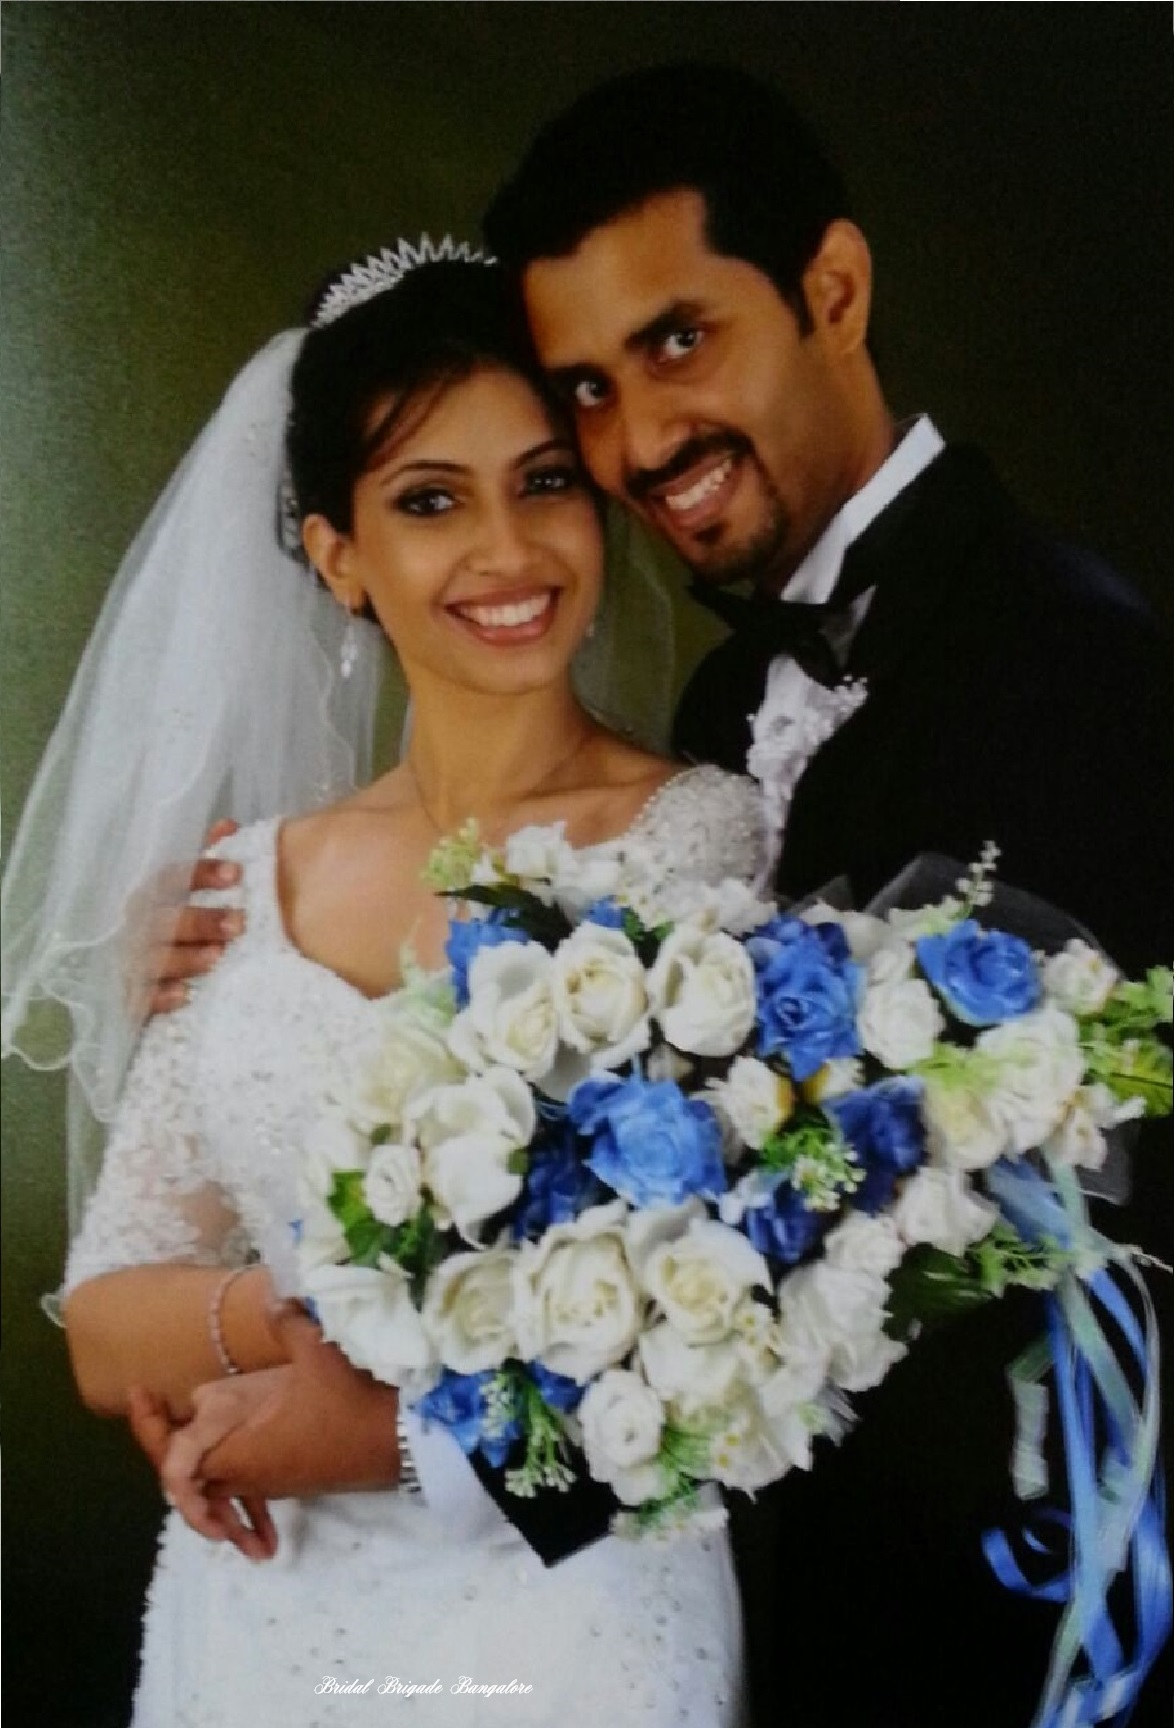 Bridal Gowns  Bangalore : Testimonials reviews bangalore brides love my wedding gown great